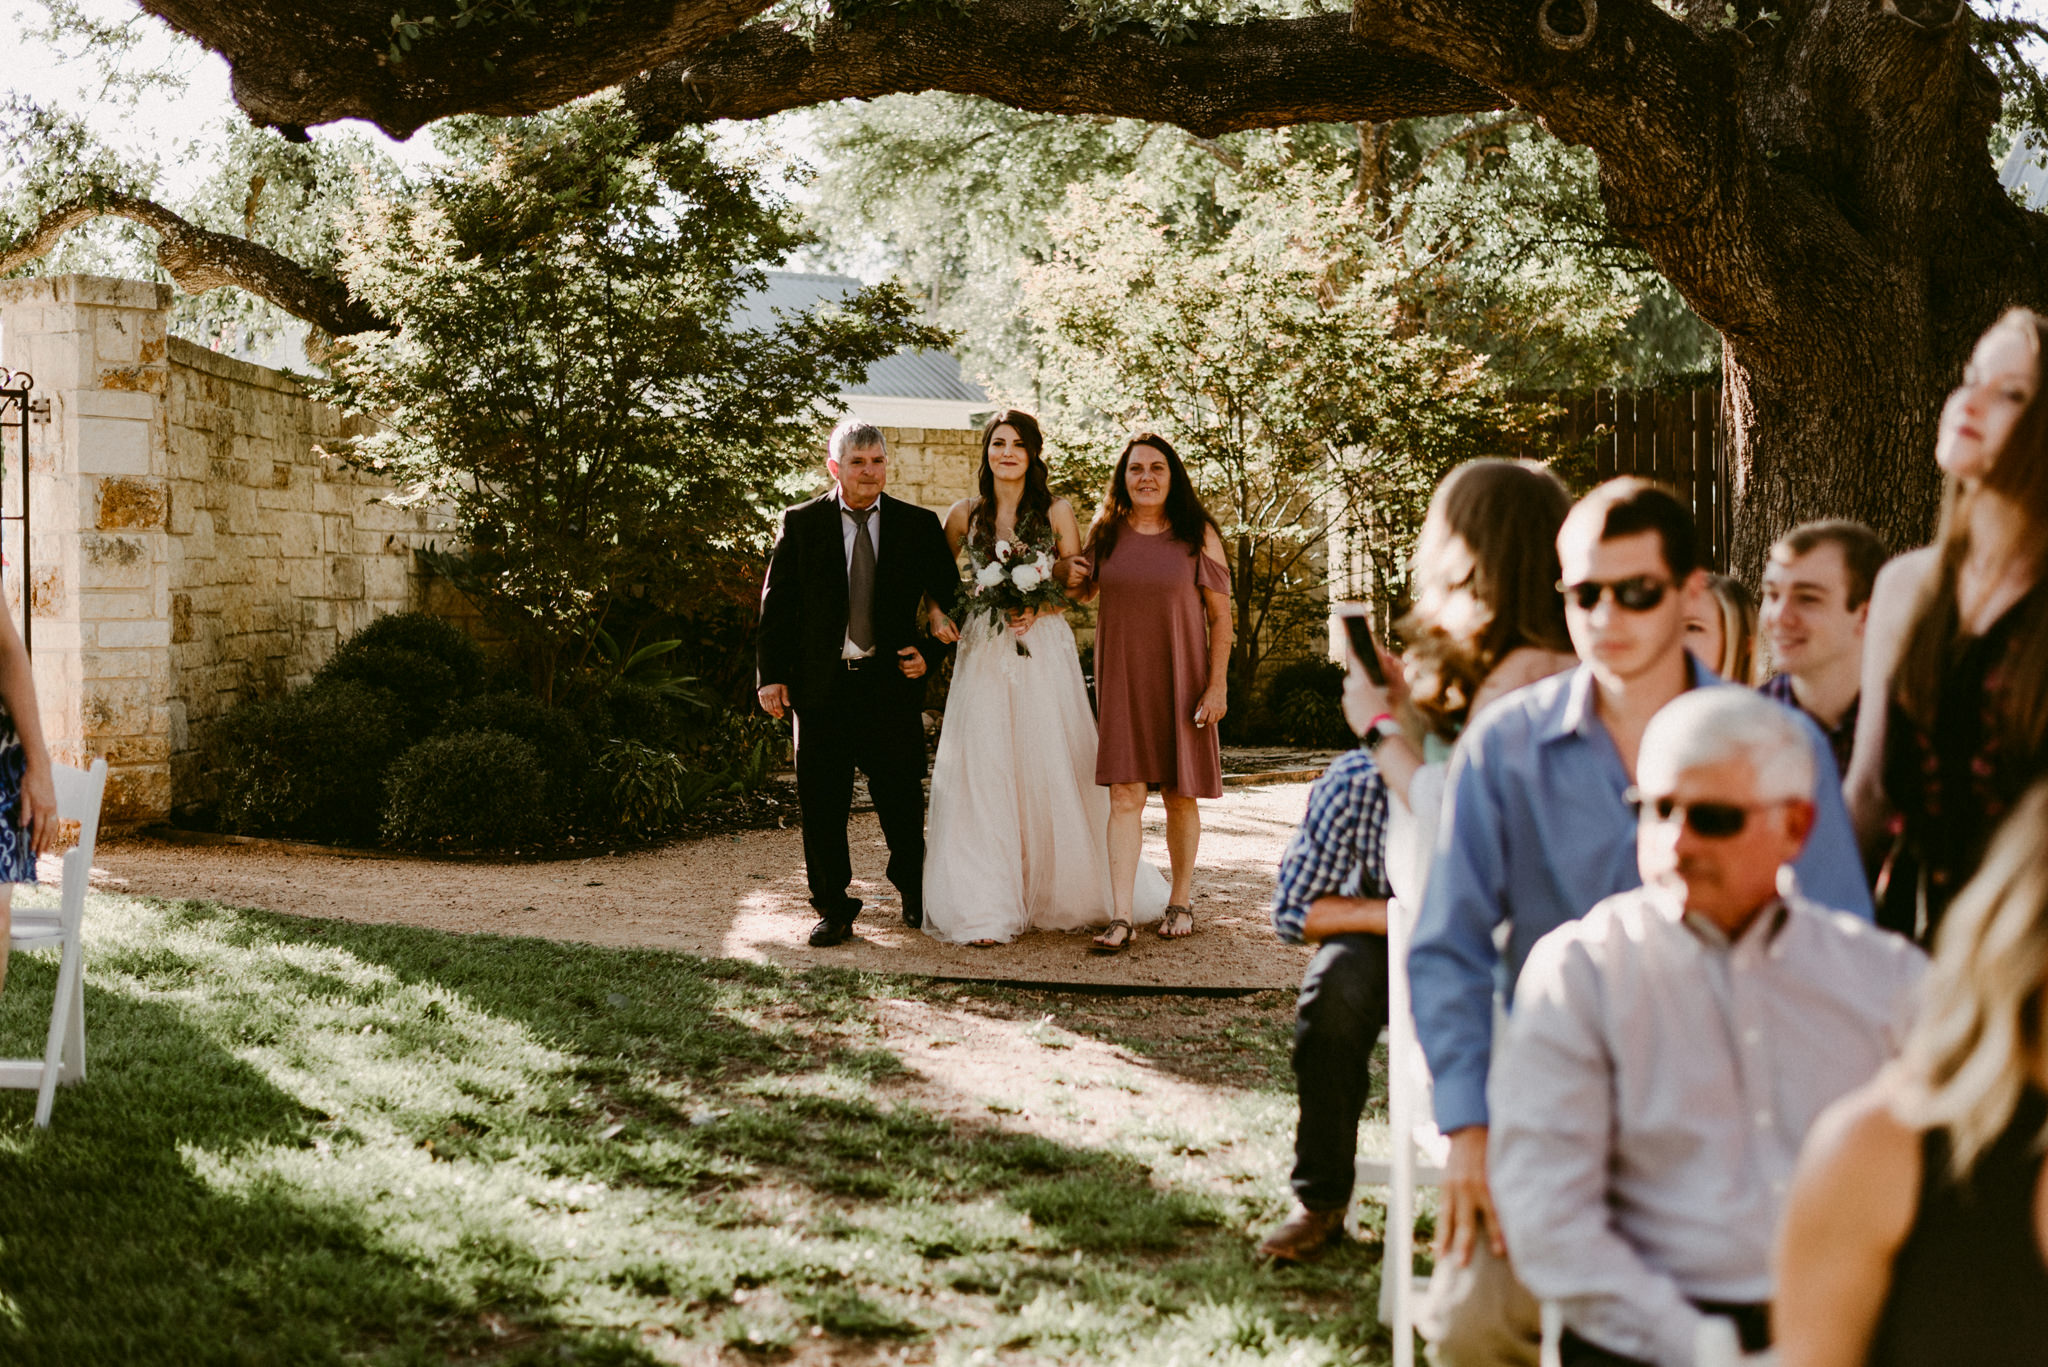 Intimate-Cathedral-Oaks-Wedding-Ceremony-Bride-Walking-Down-The-Aisle--Kerlyn-Van-Gelder-Photography-Austin-Wedding-Photographer